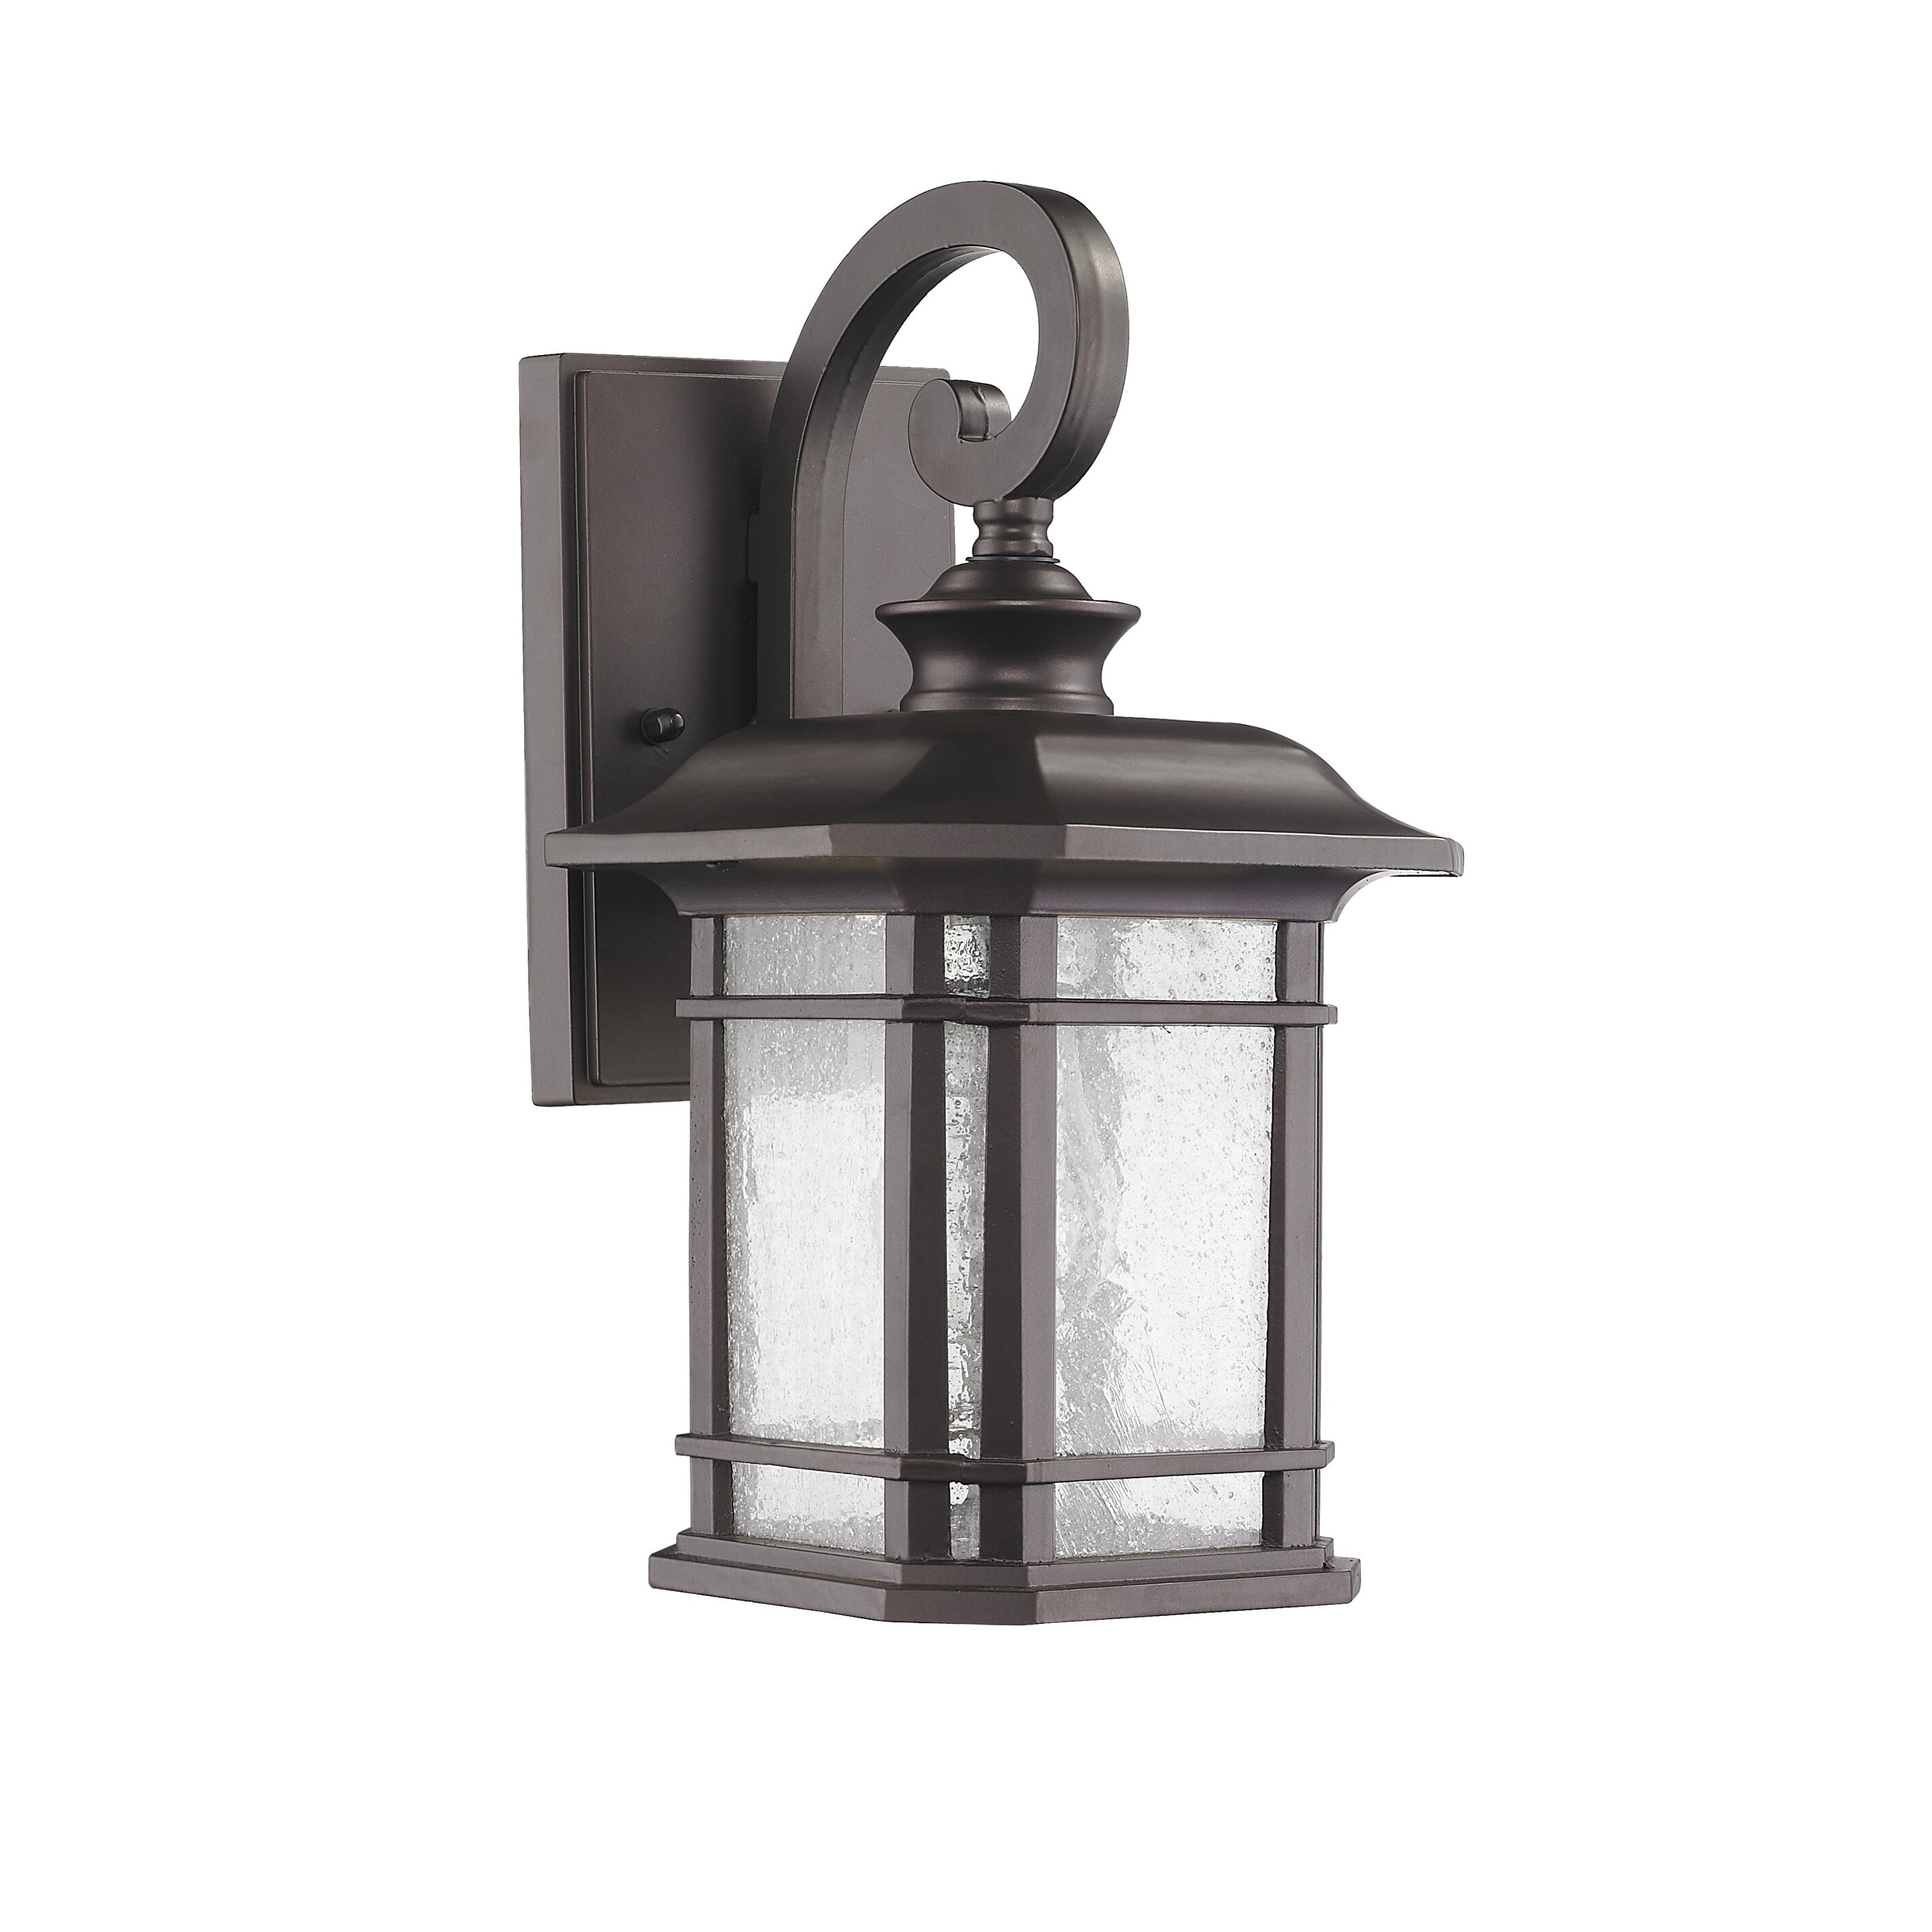 Wayfair Outdoor Wall Lights : Chloe Lighting Transitional 1 Light Outdoor Wall Lantern & Reviews Wayfair